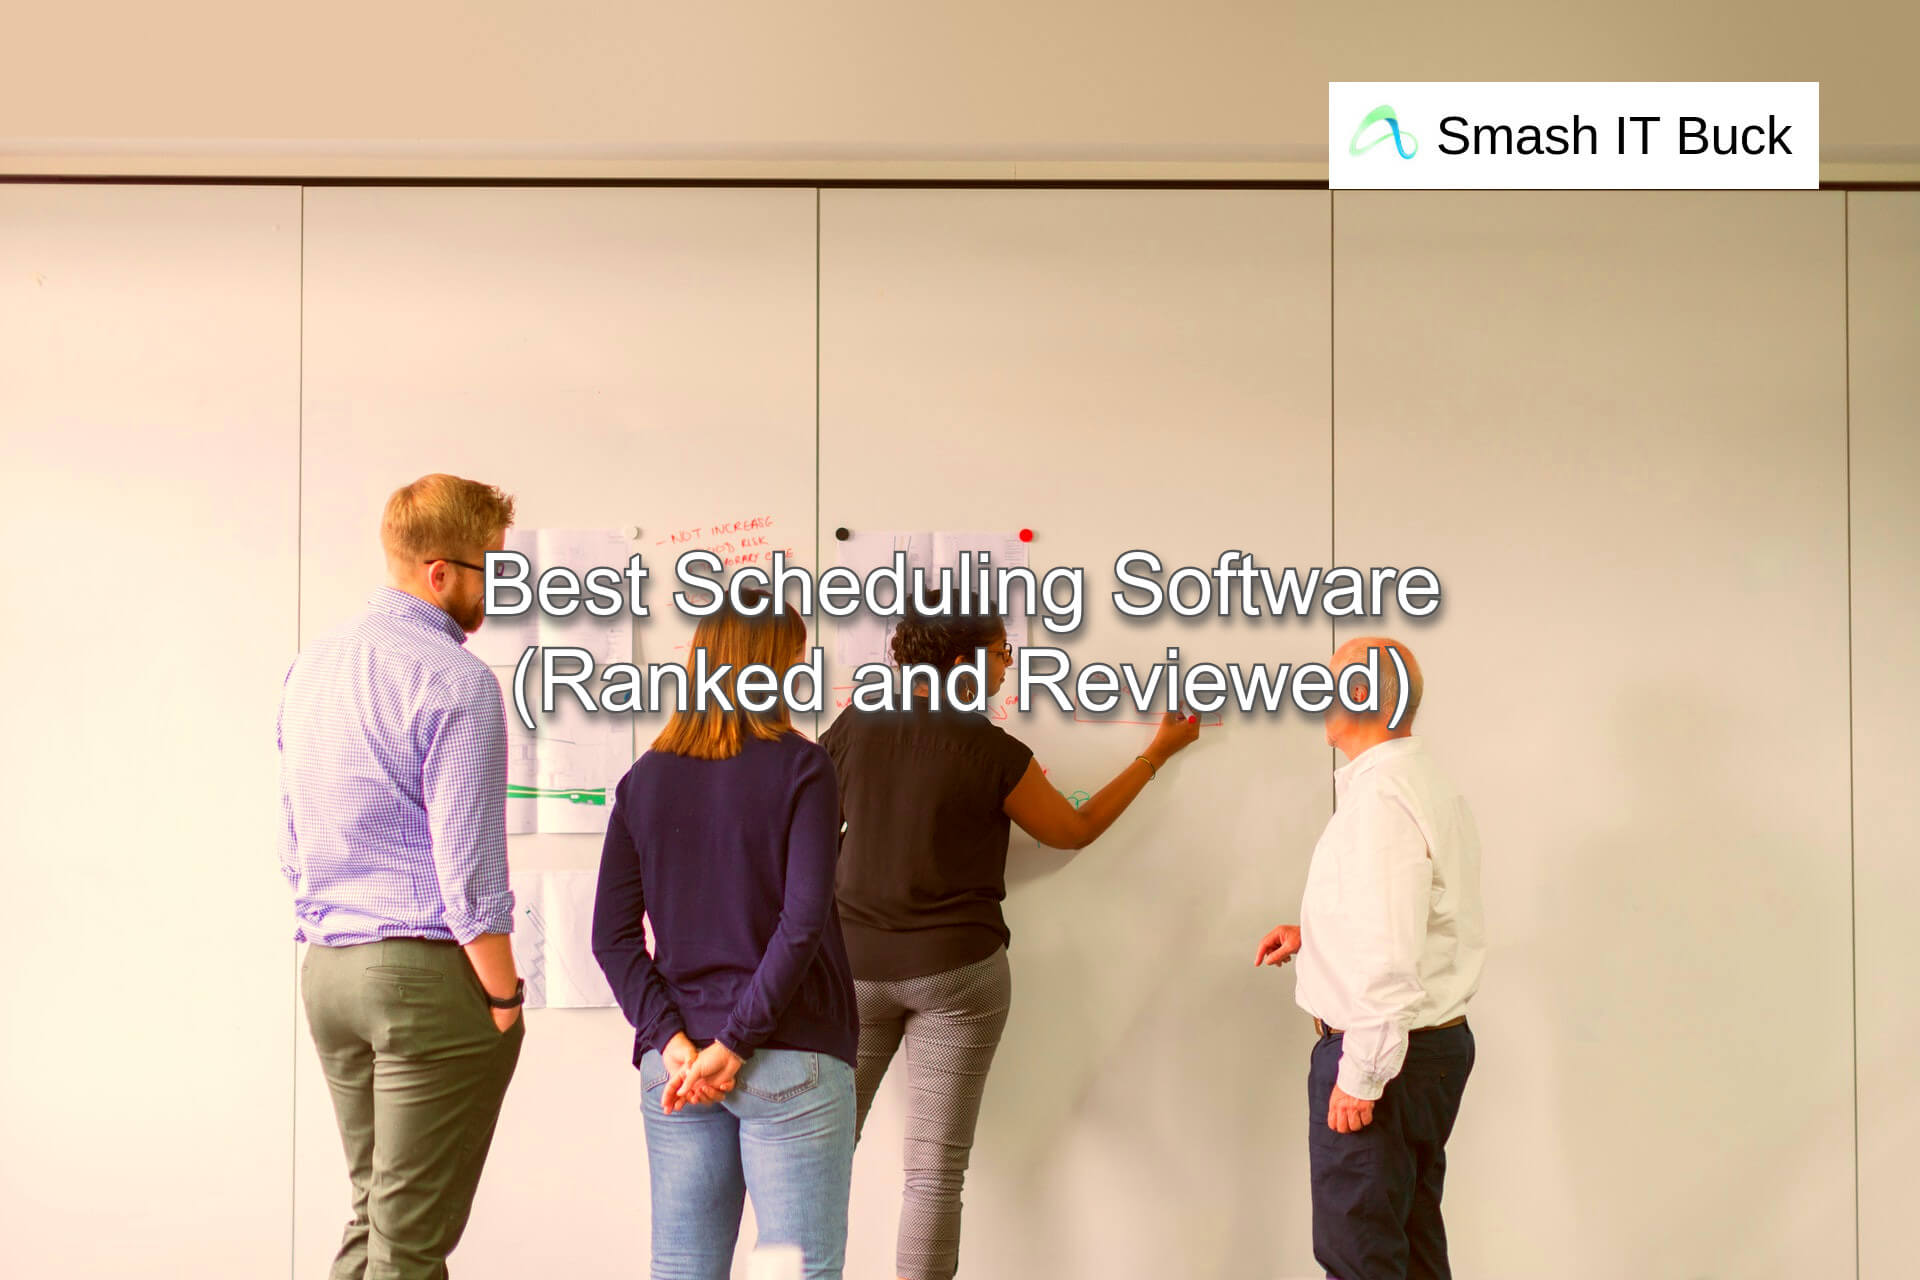 Best Scheduling Software to use in 2021